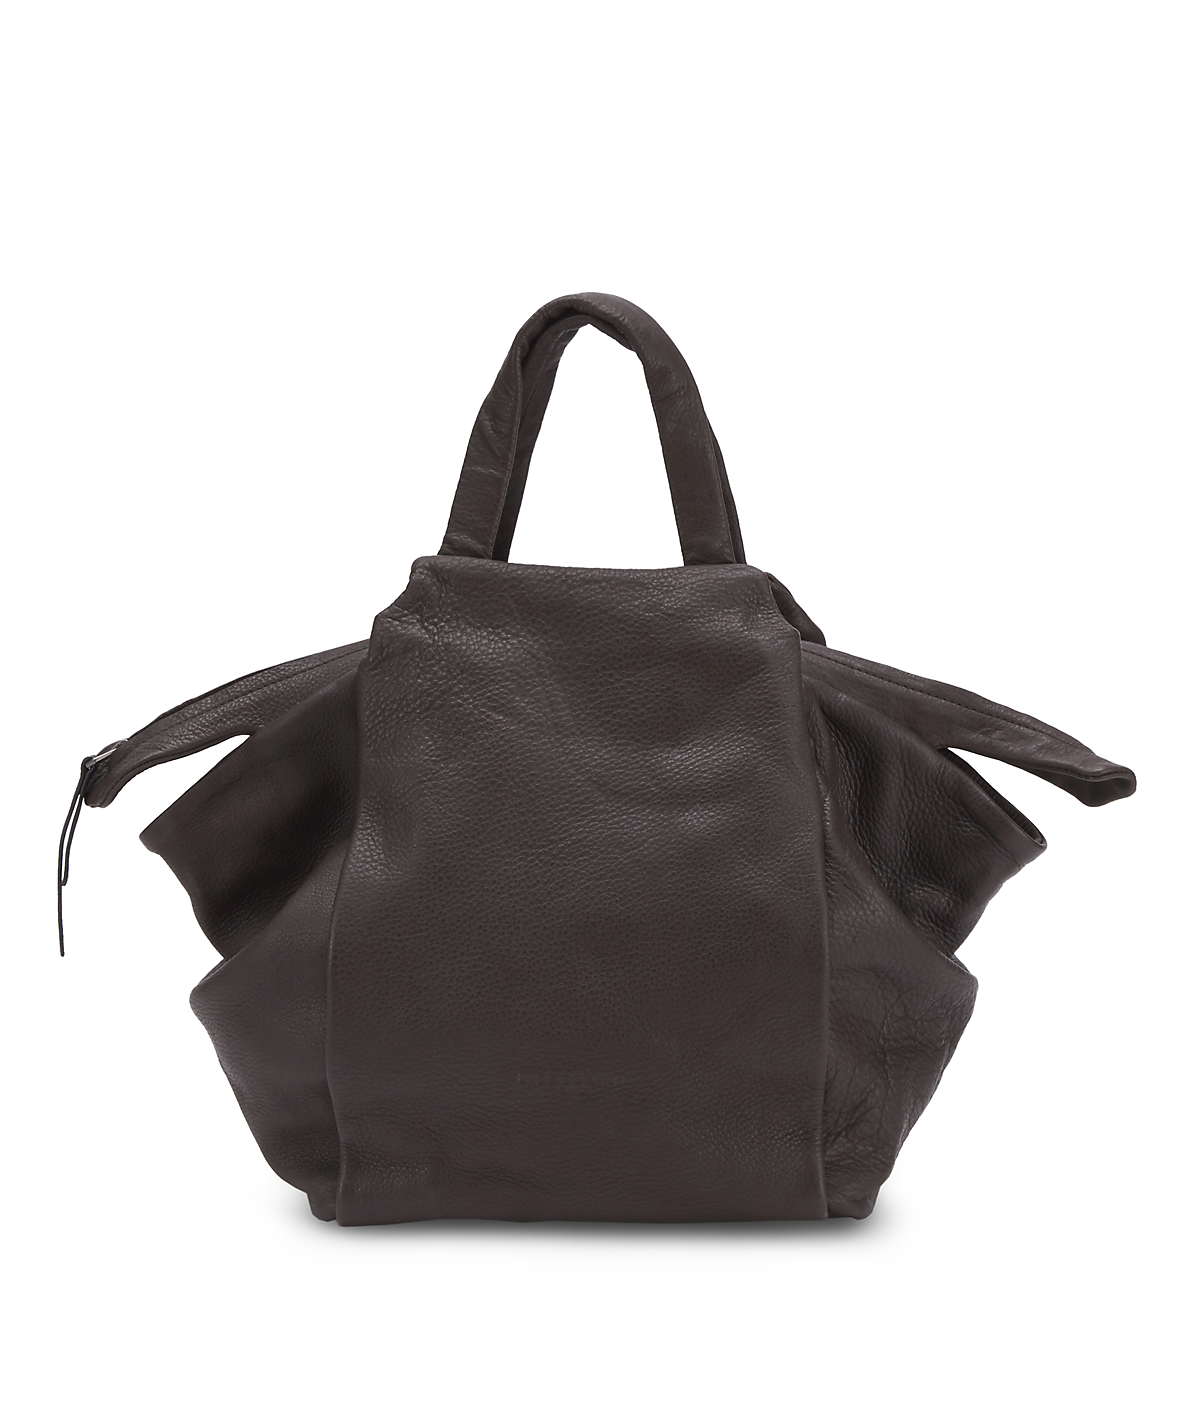 Noda shopper from liebeskind